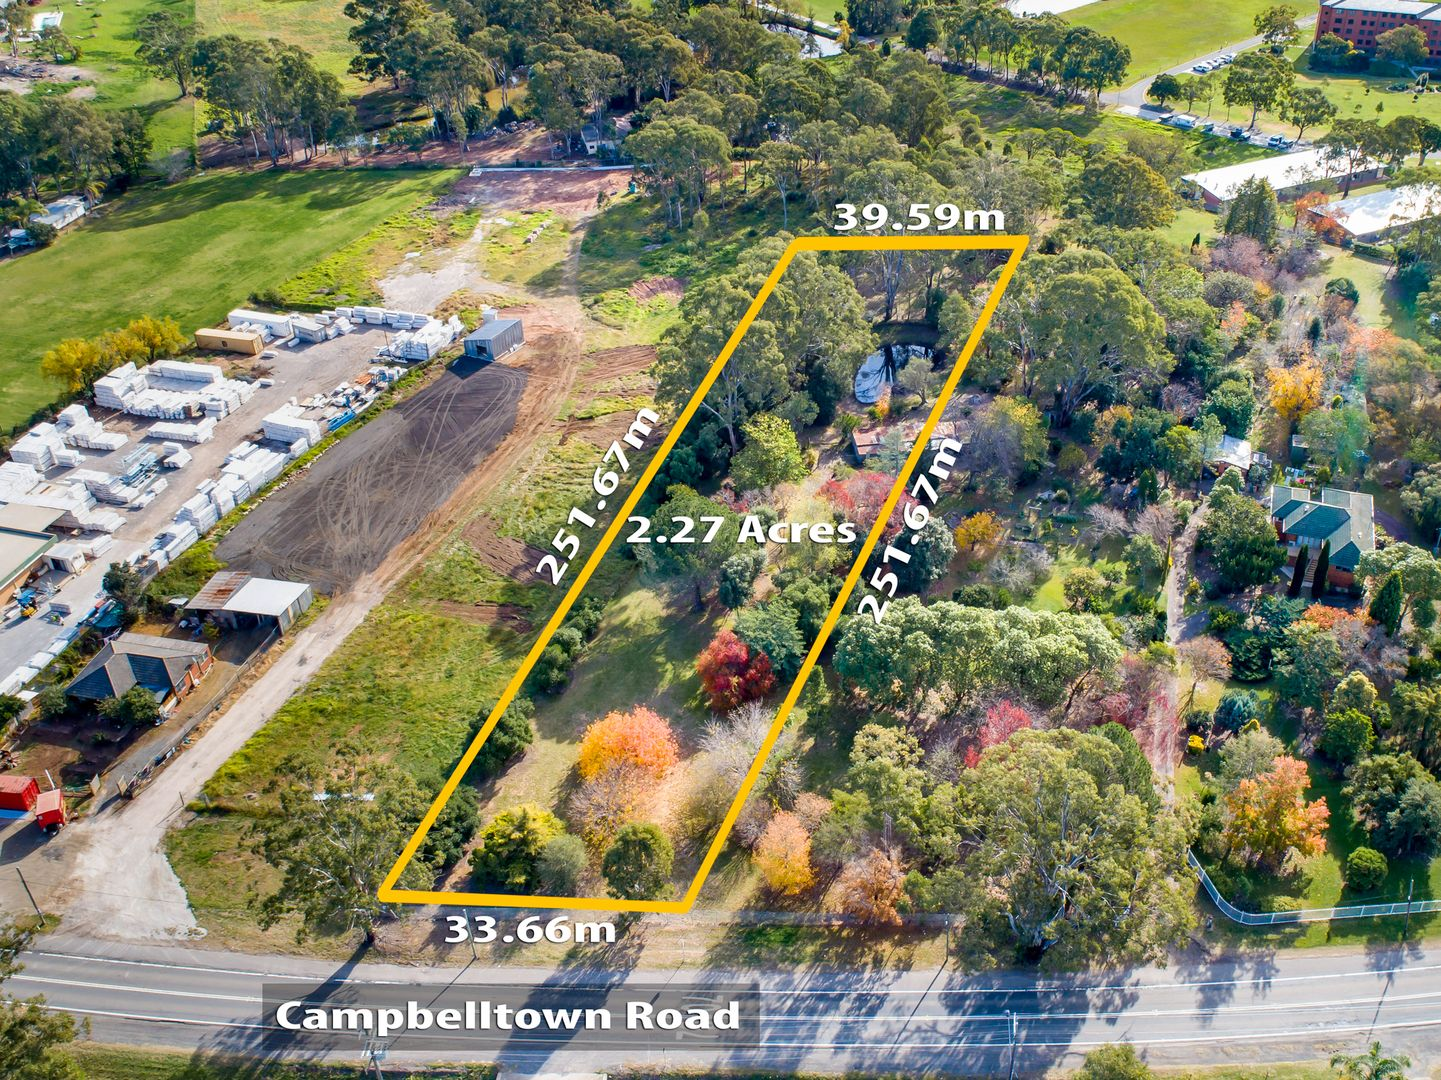 Lot 32/461 Campbelltown Road, Denham Court NSW 2565, Image 0